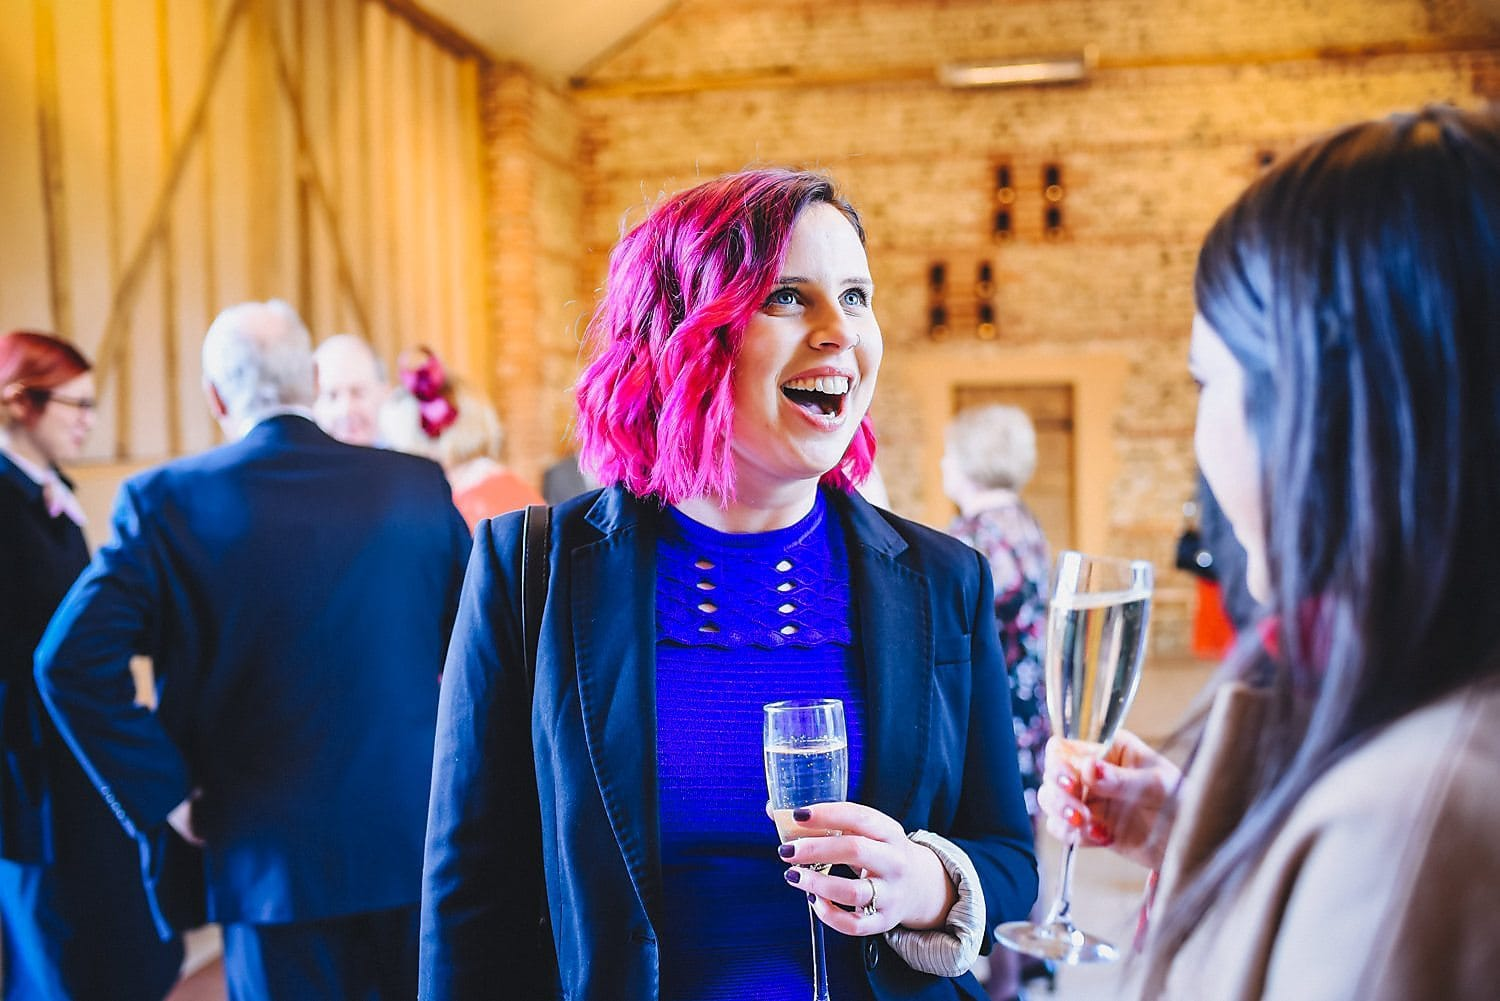 A female guest with bright pink hair chats to a friend while holding a glass of fizz